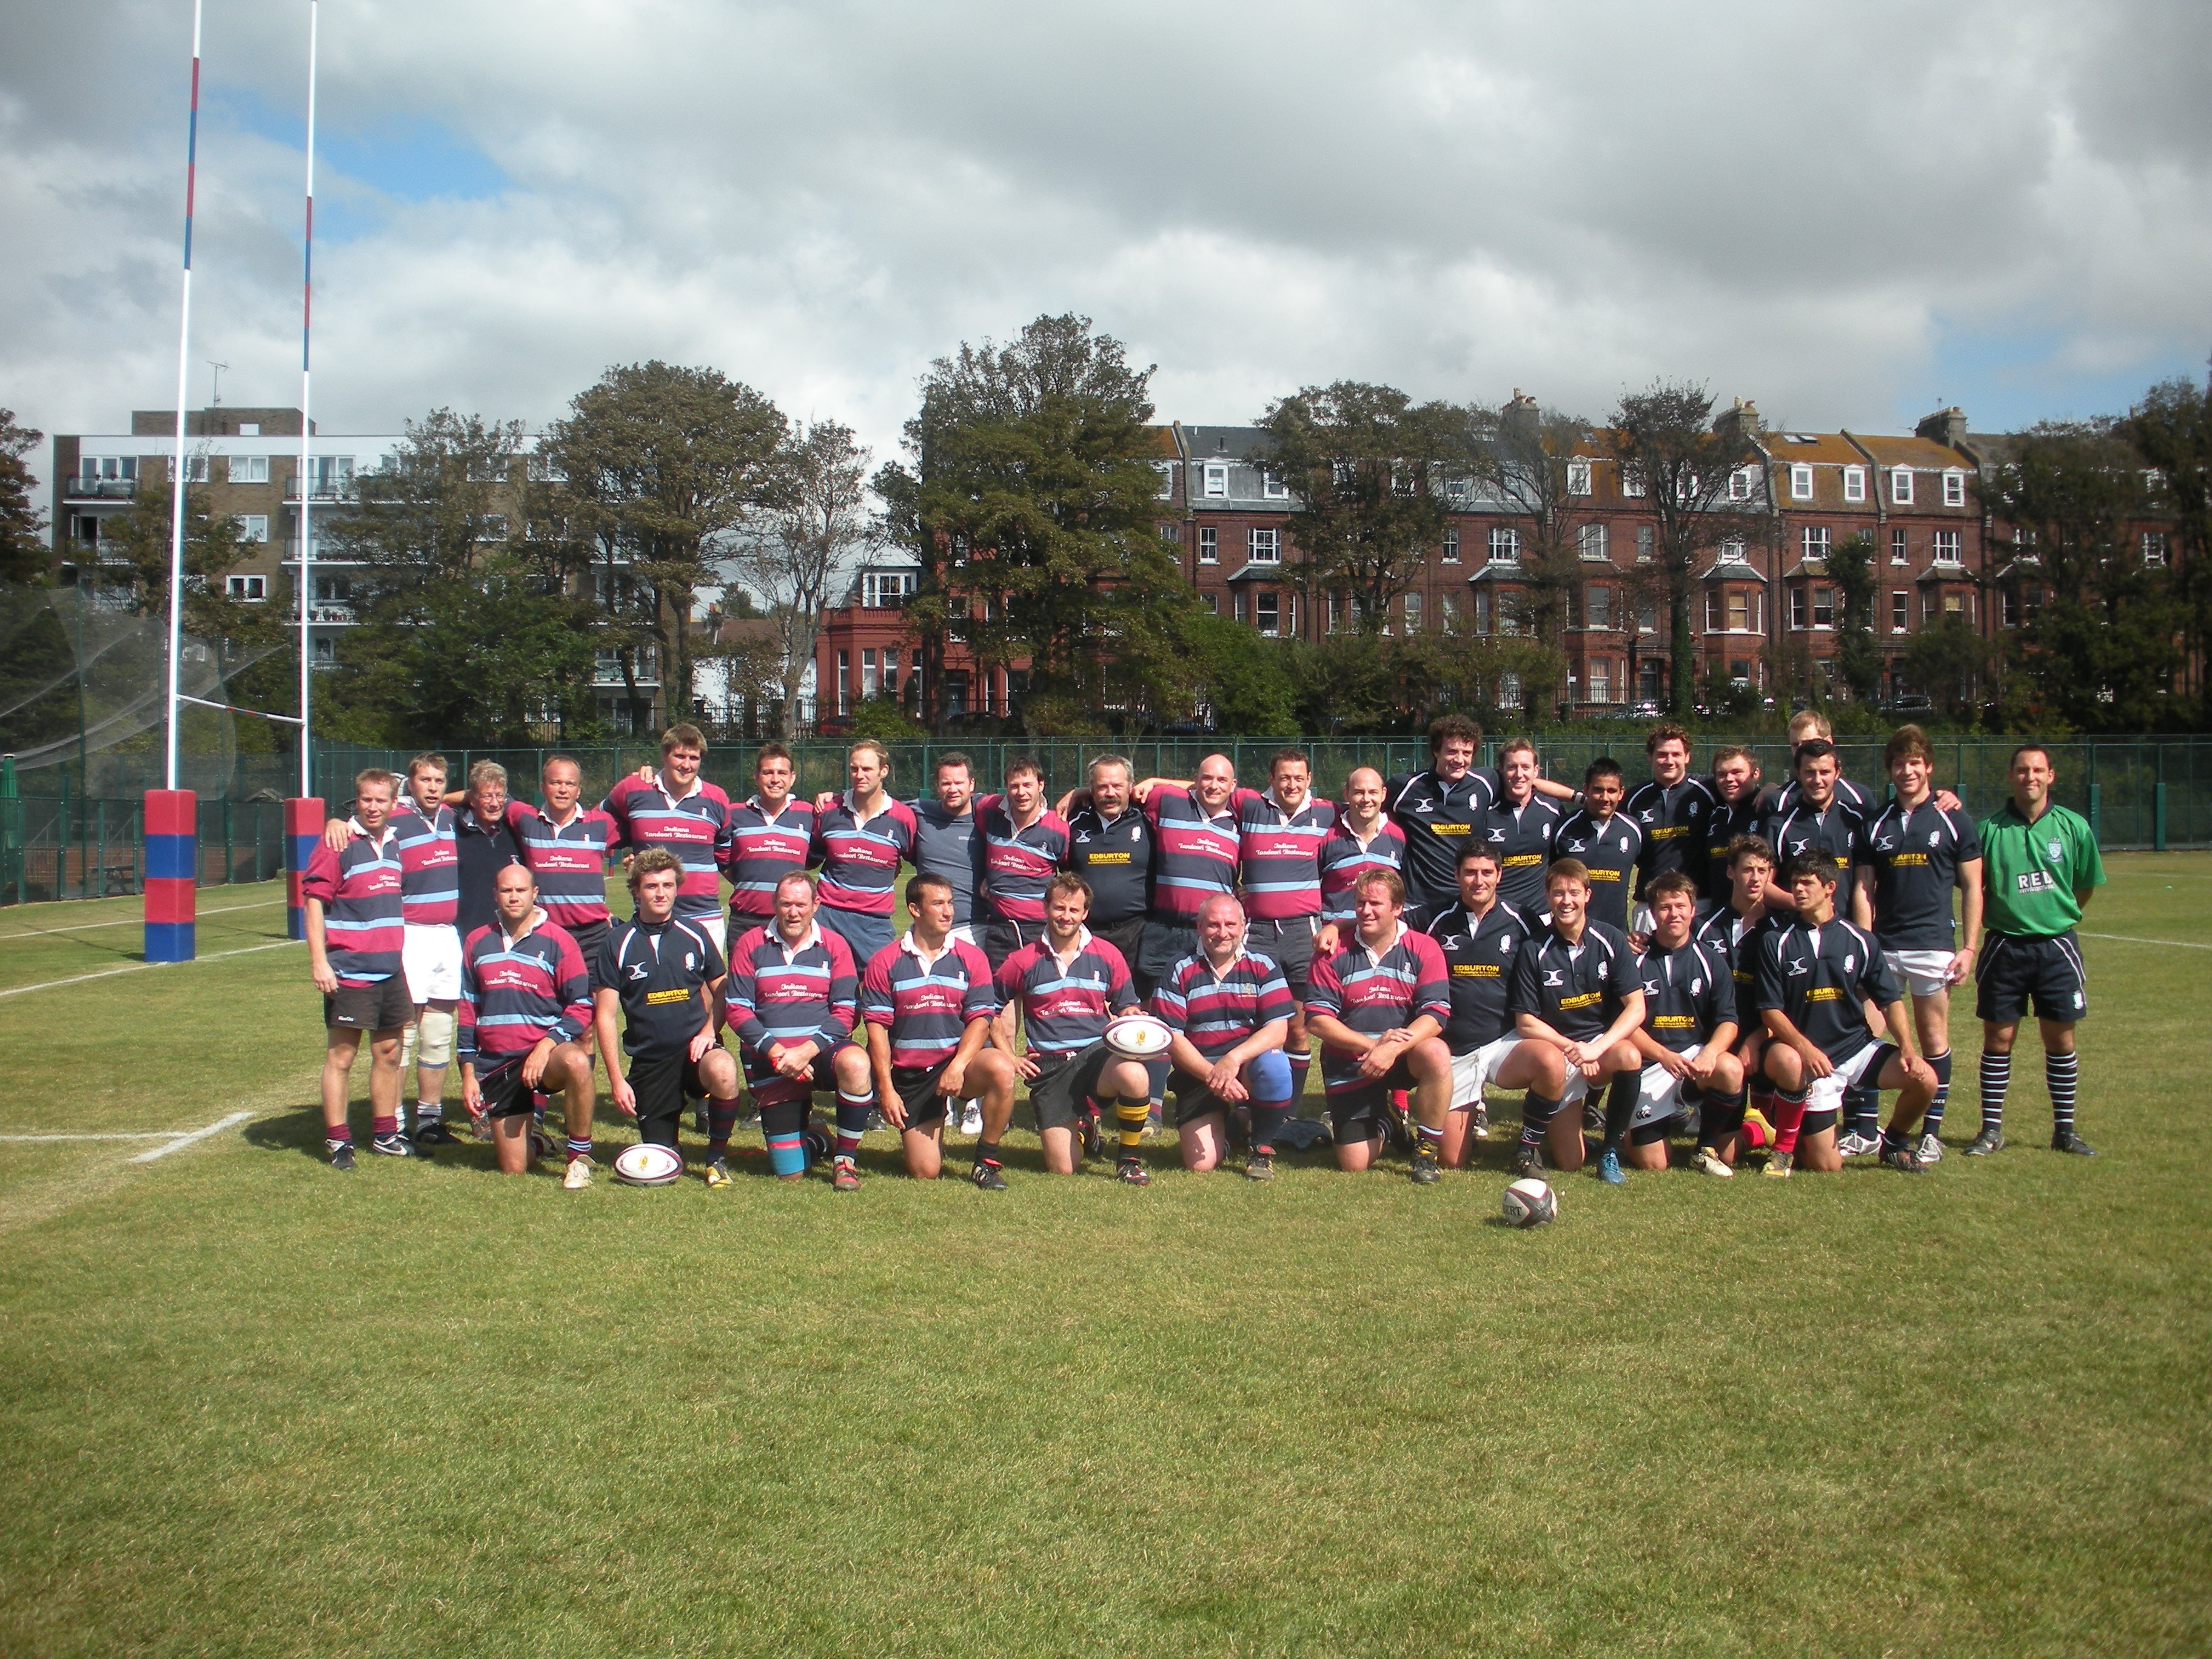 The Peter Rumney Memorial Rugby Match 2009